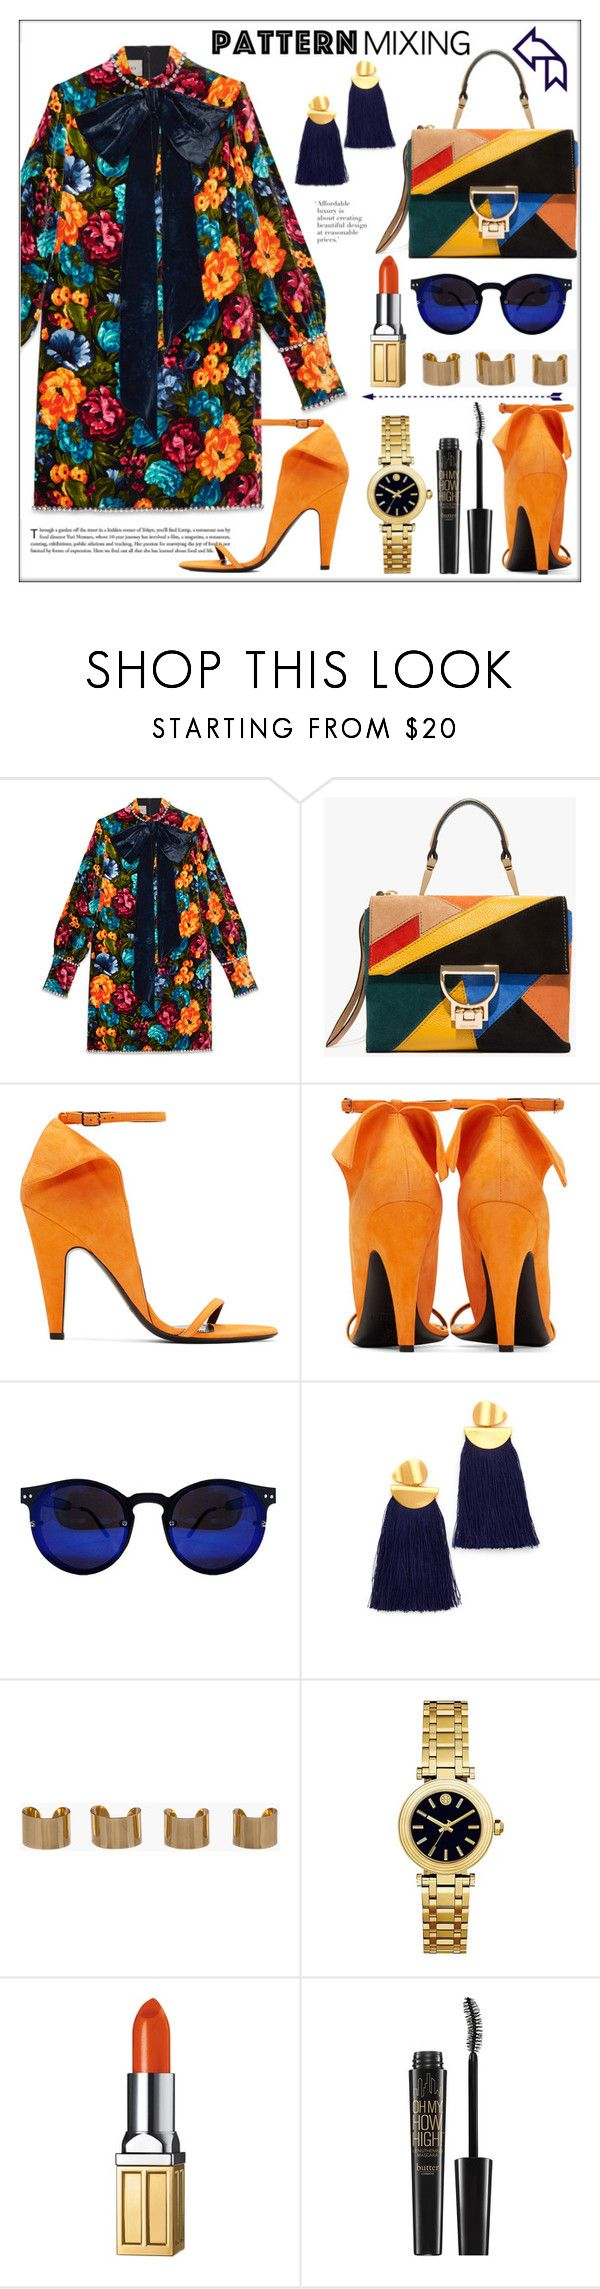 """""""Pattern Mixing on a Fall Day"""" by pat912 ❤ liked on Polyvore featuring Gucci, Calvin Klein 205W39NYC, Lizzie Fortunato, Maison Margiela, Tory Burch, Elizabeth Arden, Butter London and polyvoreeditorial"""